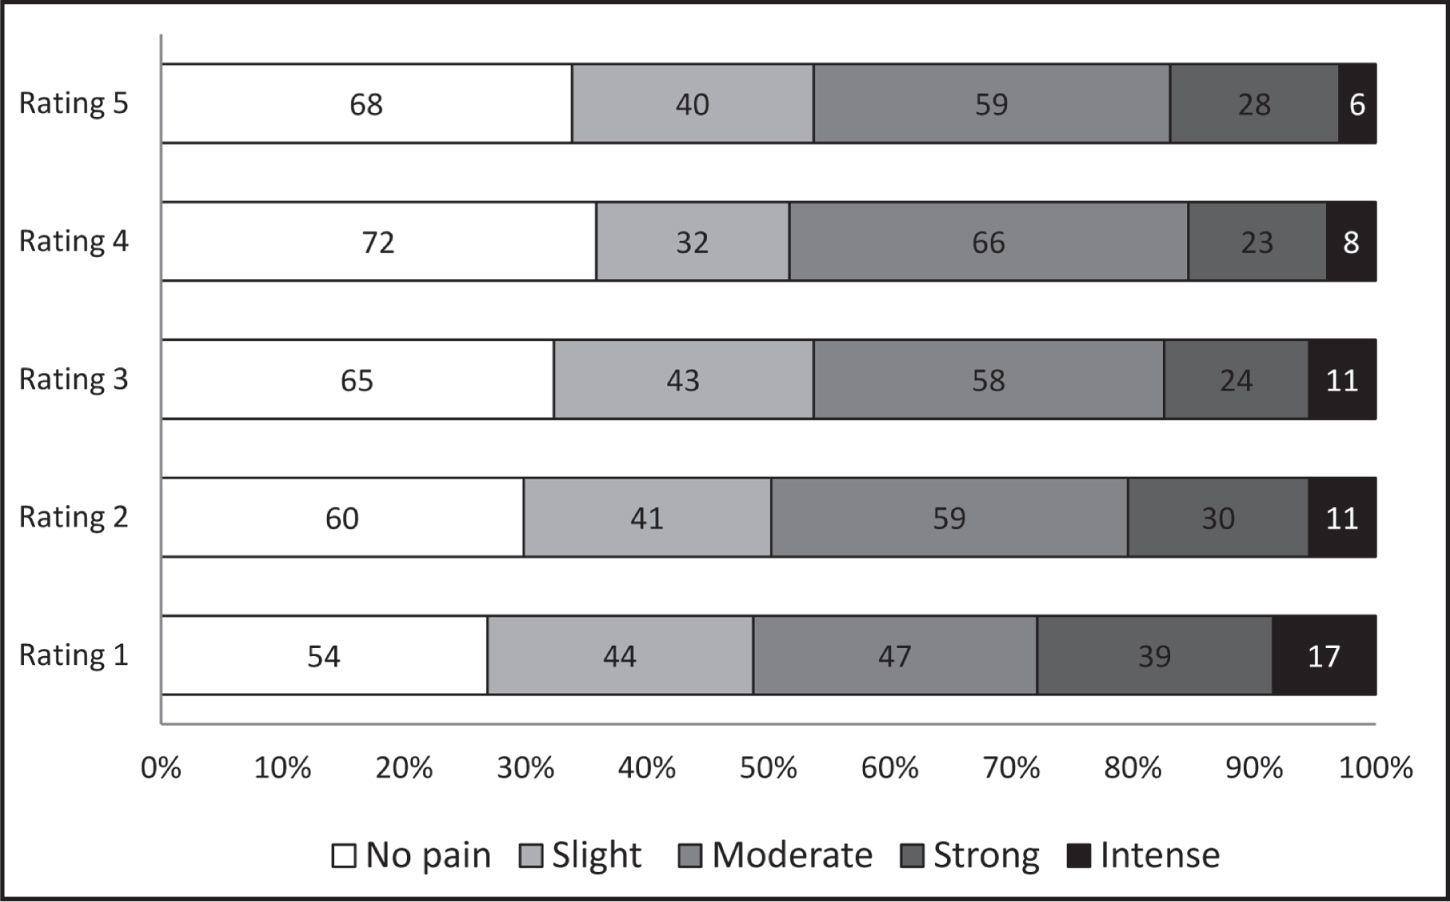 Distribution of pain levels at five pain ratings (N = 201).